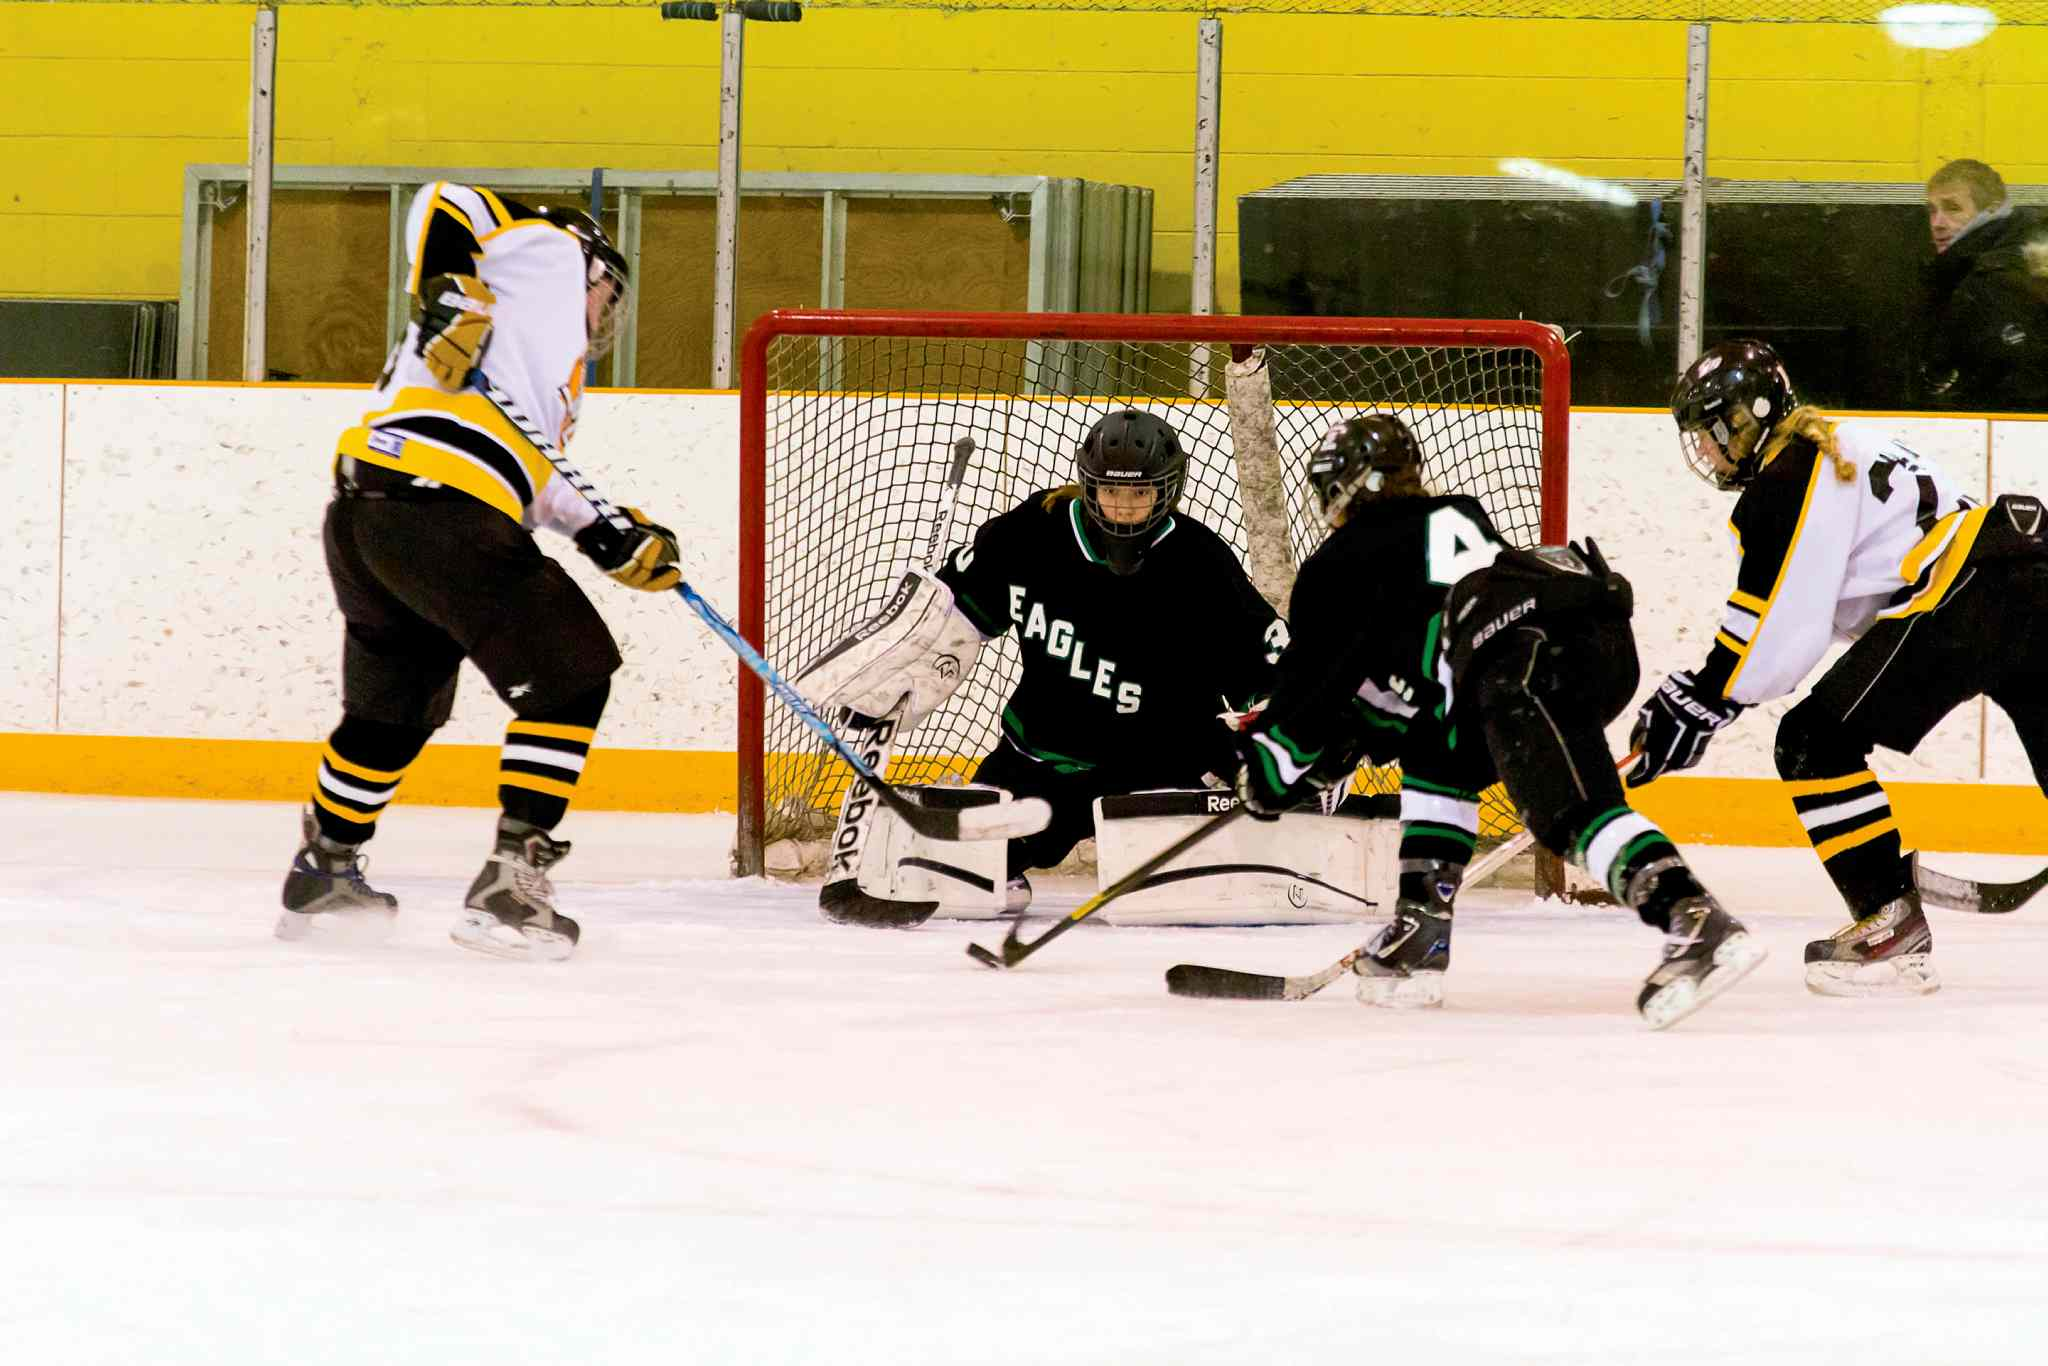 SJR Eagles goalie Steph Caryk was named the Winnipeg Women's High School Hockey League Athlete of the Week for the week ending Jan. 31.